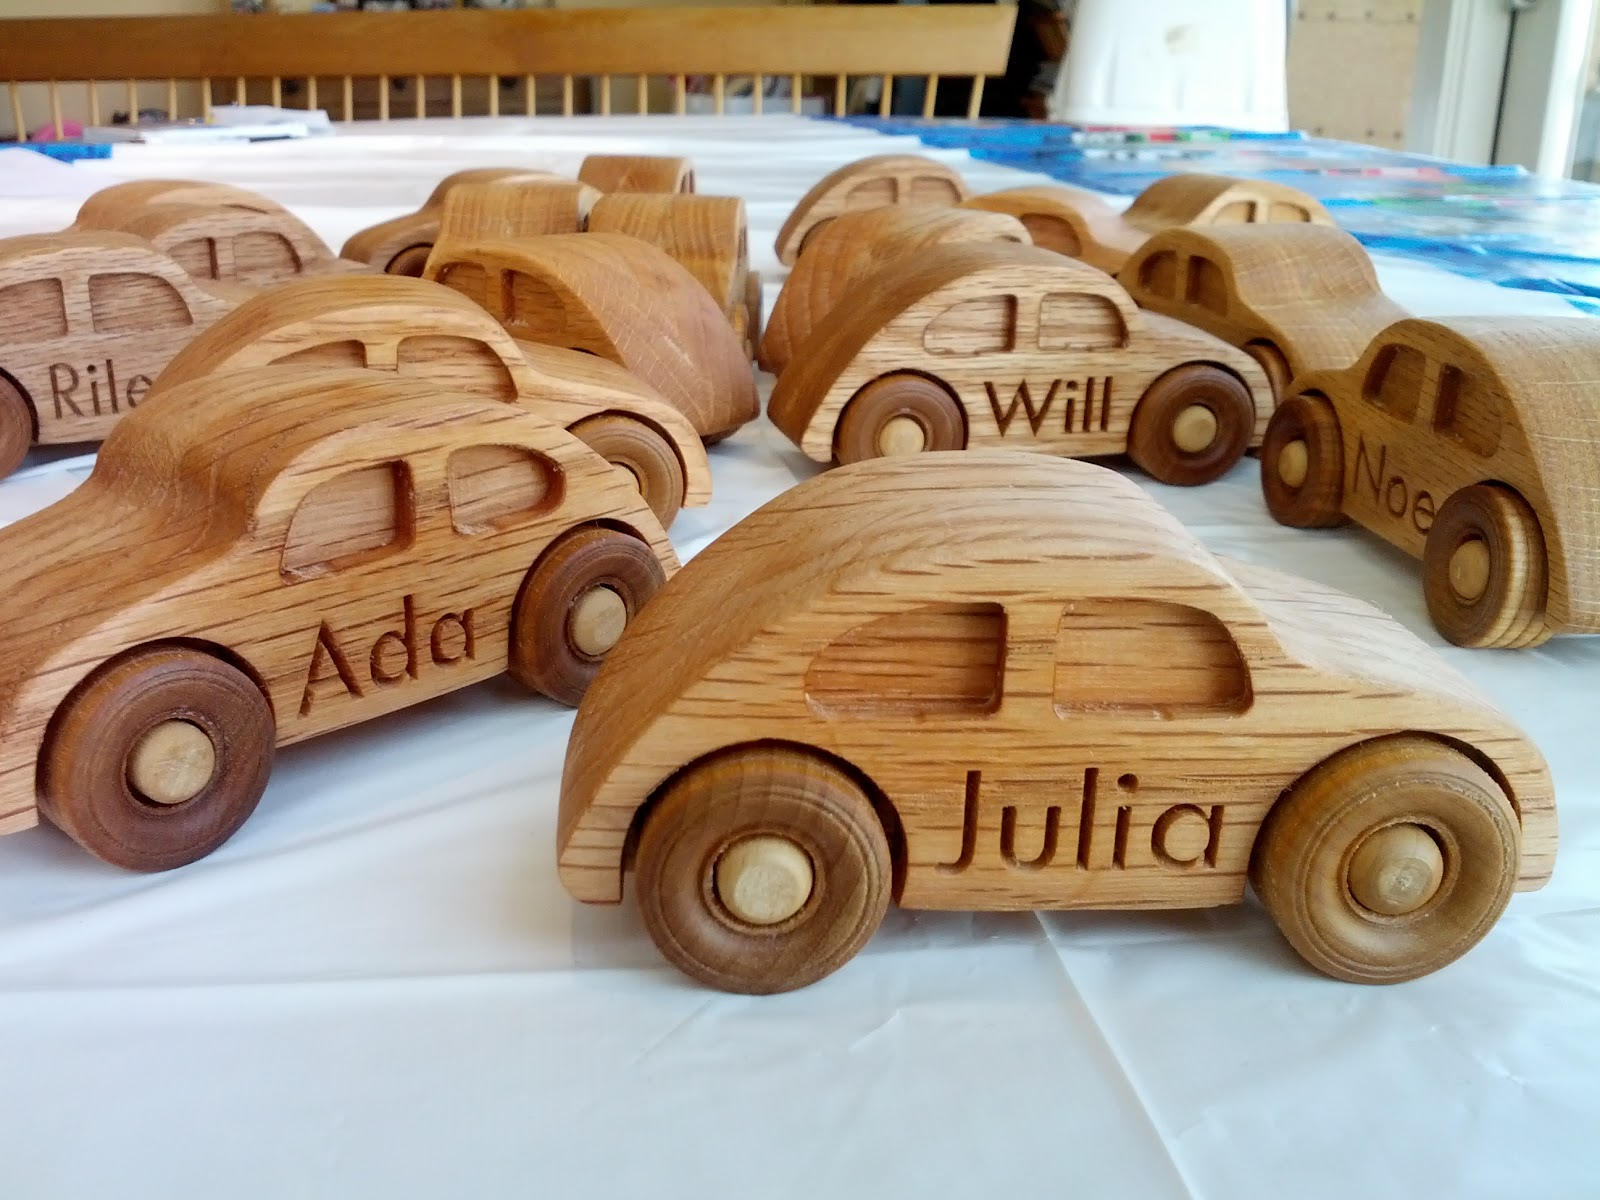 ... with wheels, I've made a fair number of wooden toy vehicles